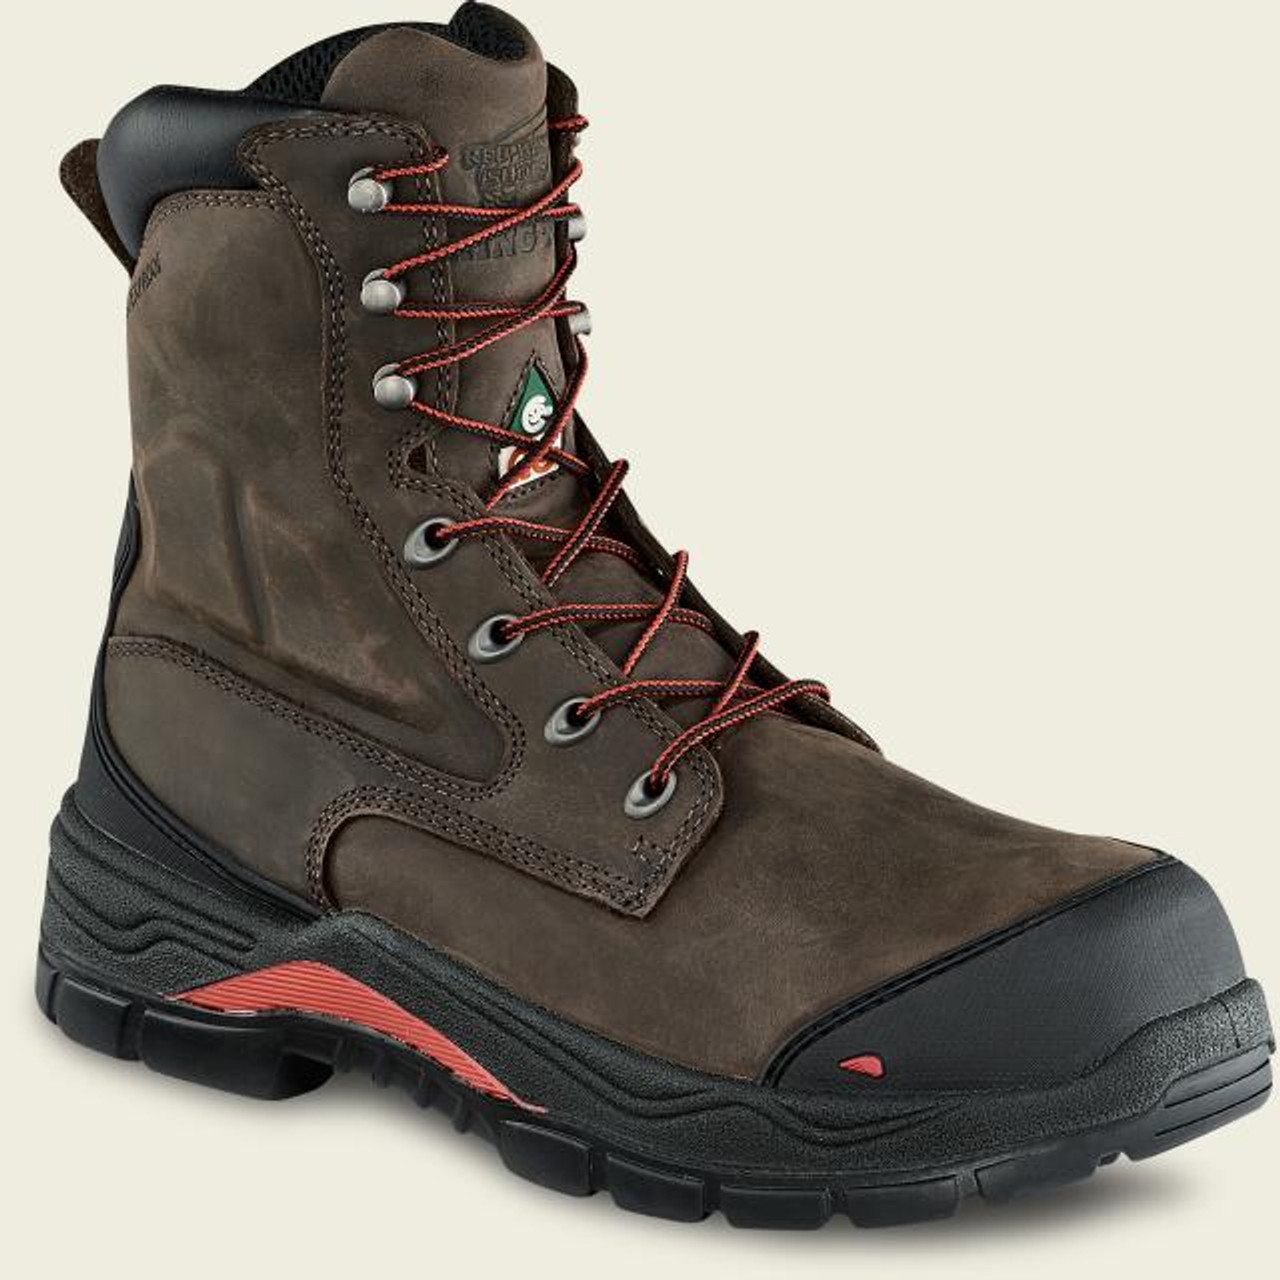 Men's Red Wing 3552 Insulated